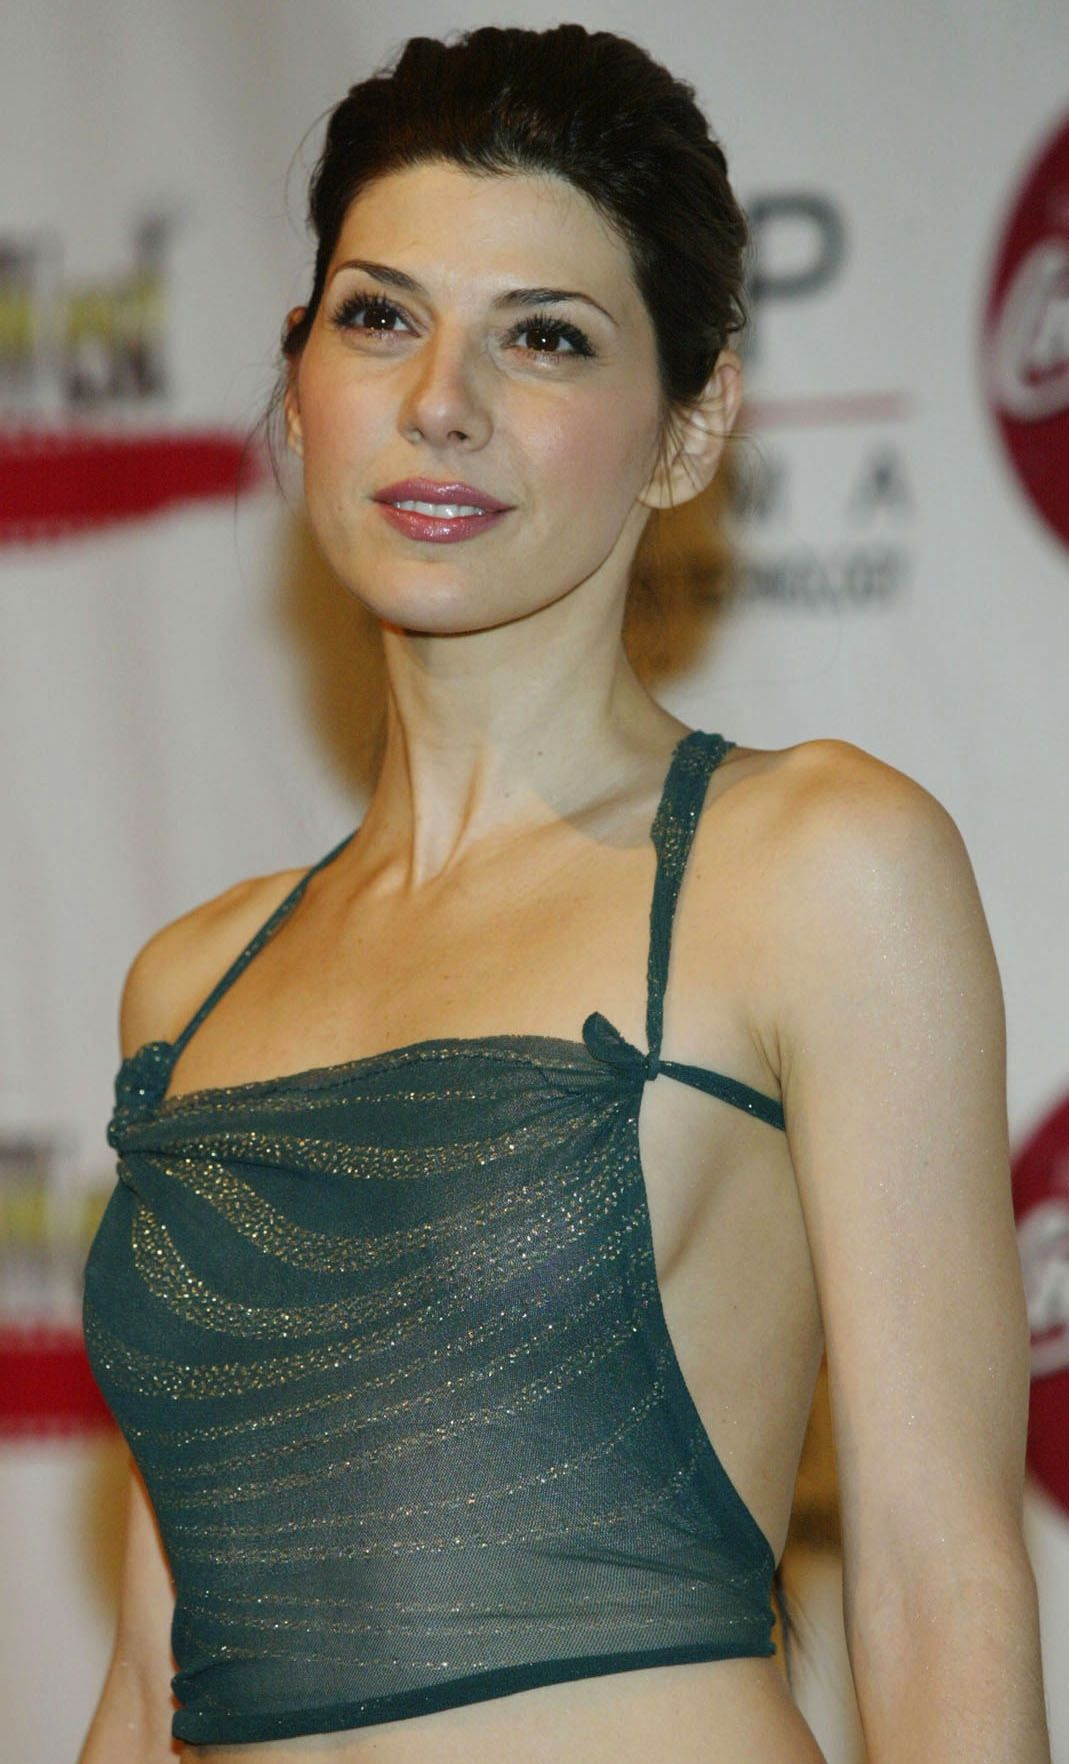 Marisa Tomei HD Wallpaper From Gallsource.com | Celebrity photos …